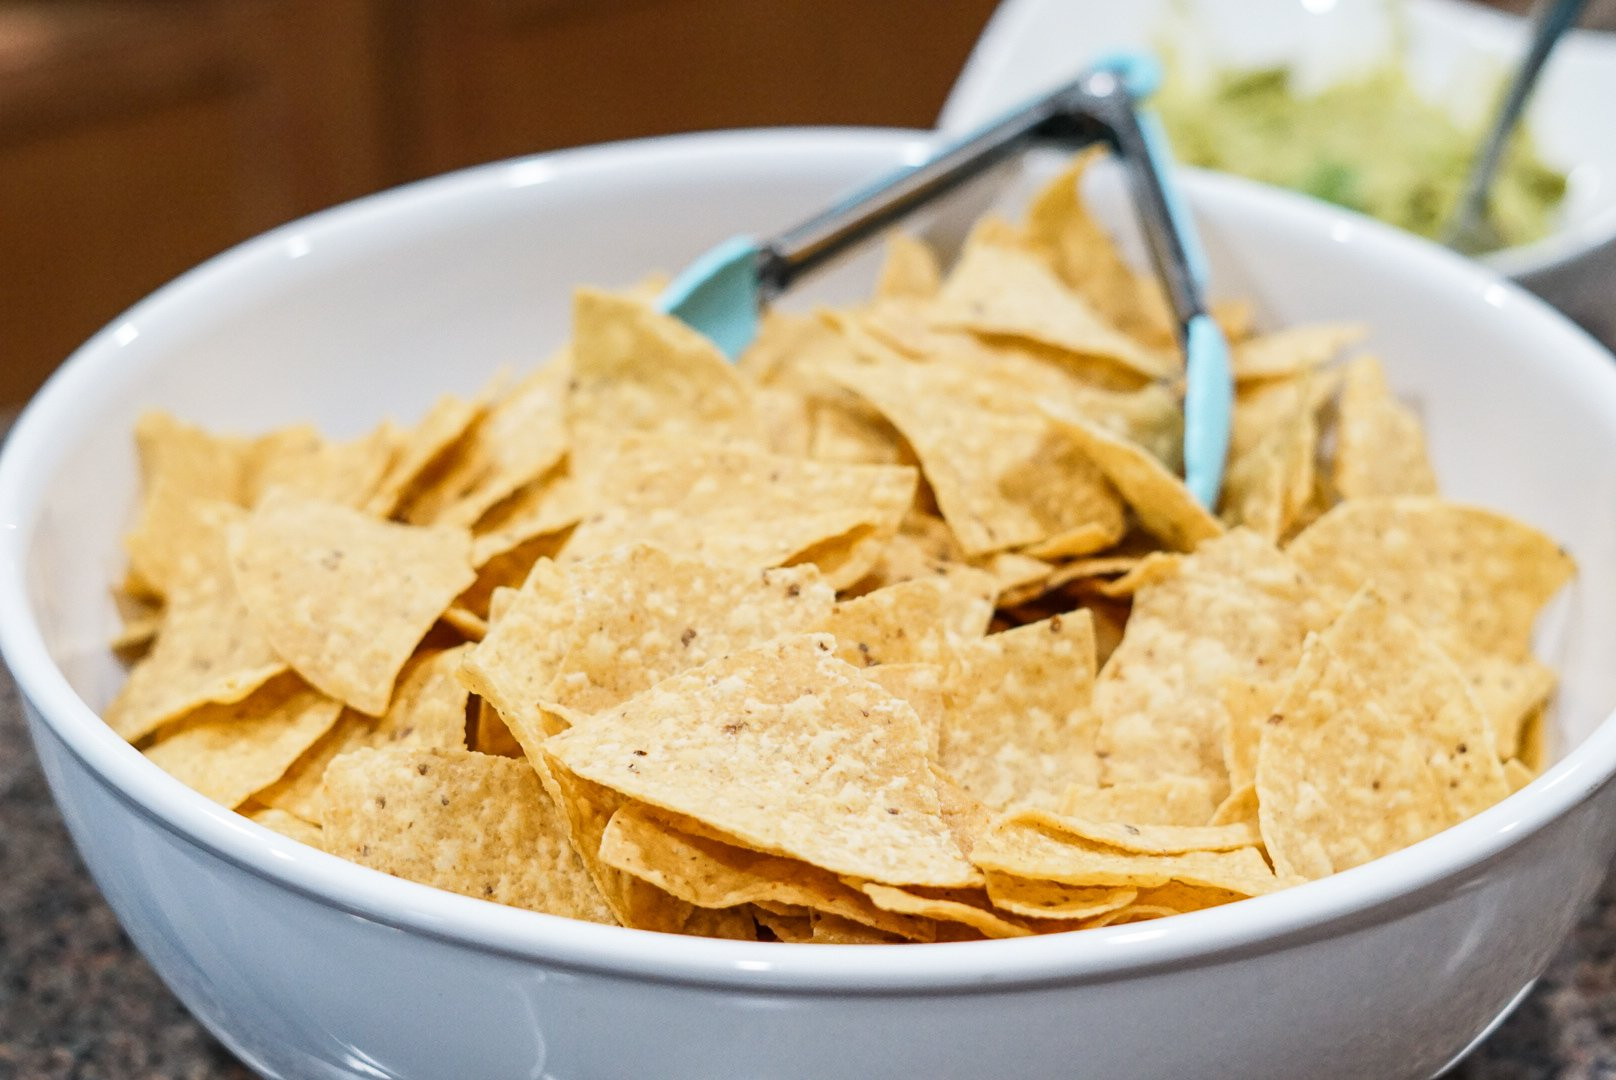 Chips from Mi Cocina - Simply Madisynn